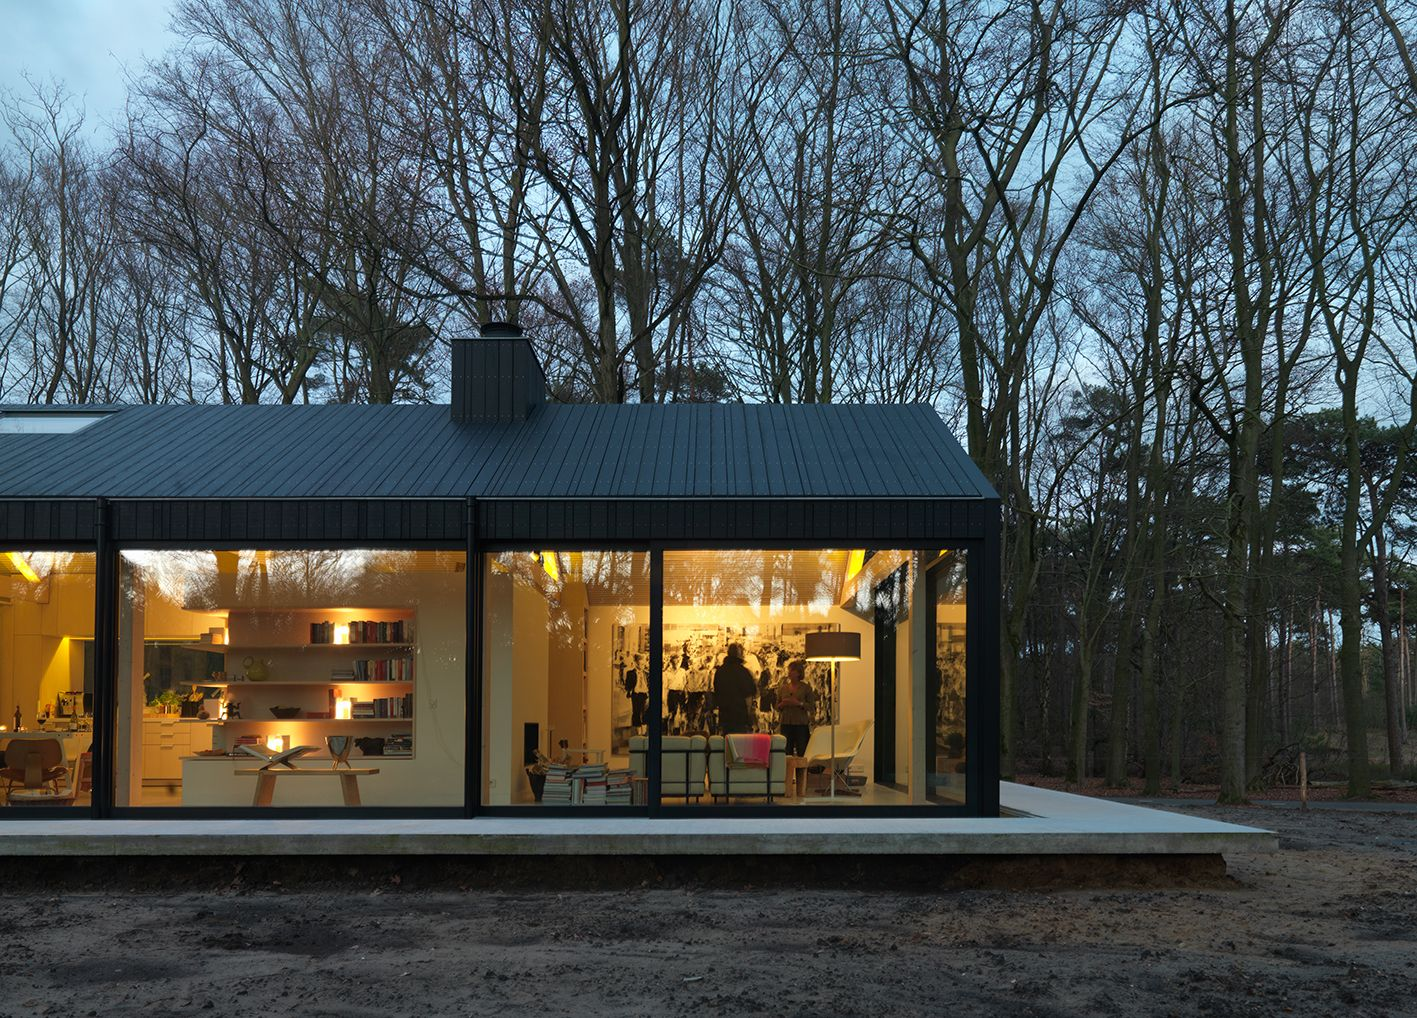 Functionals.eu and van-esch.com owner has built his new house in the woods of Oisterwijk (NL) Architecture: Jacq de Brouwer from BedauxdeBrouwer Goirle (NL) Photography: Michel Kivits (NL) 22-2-2015